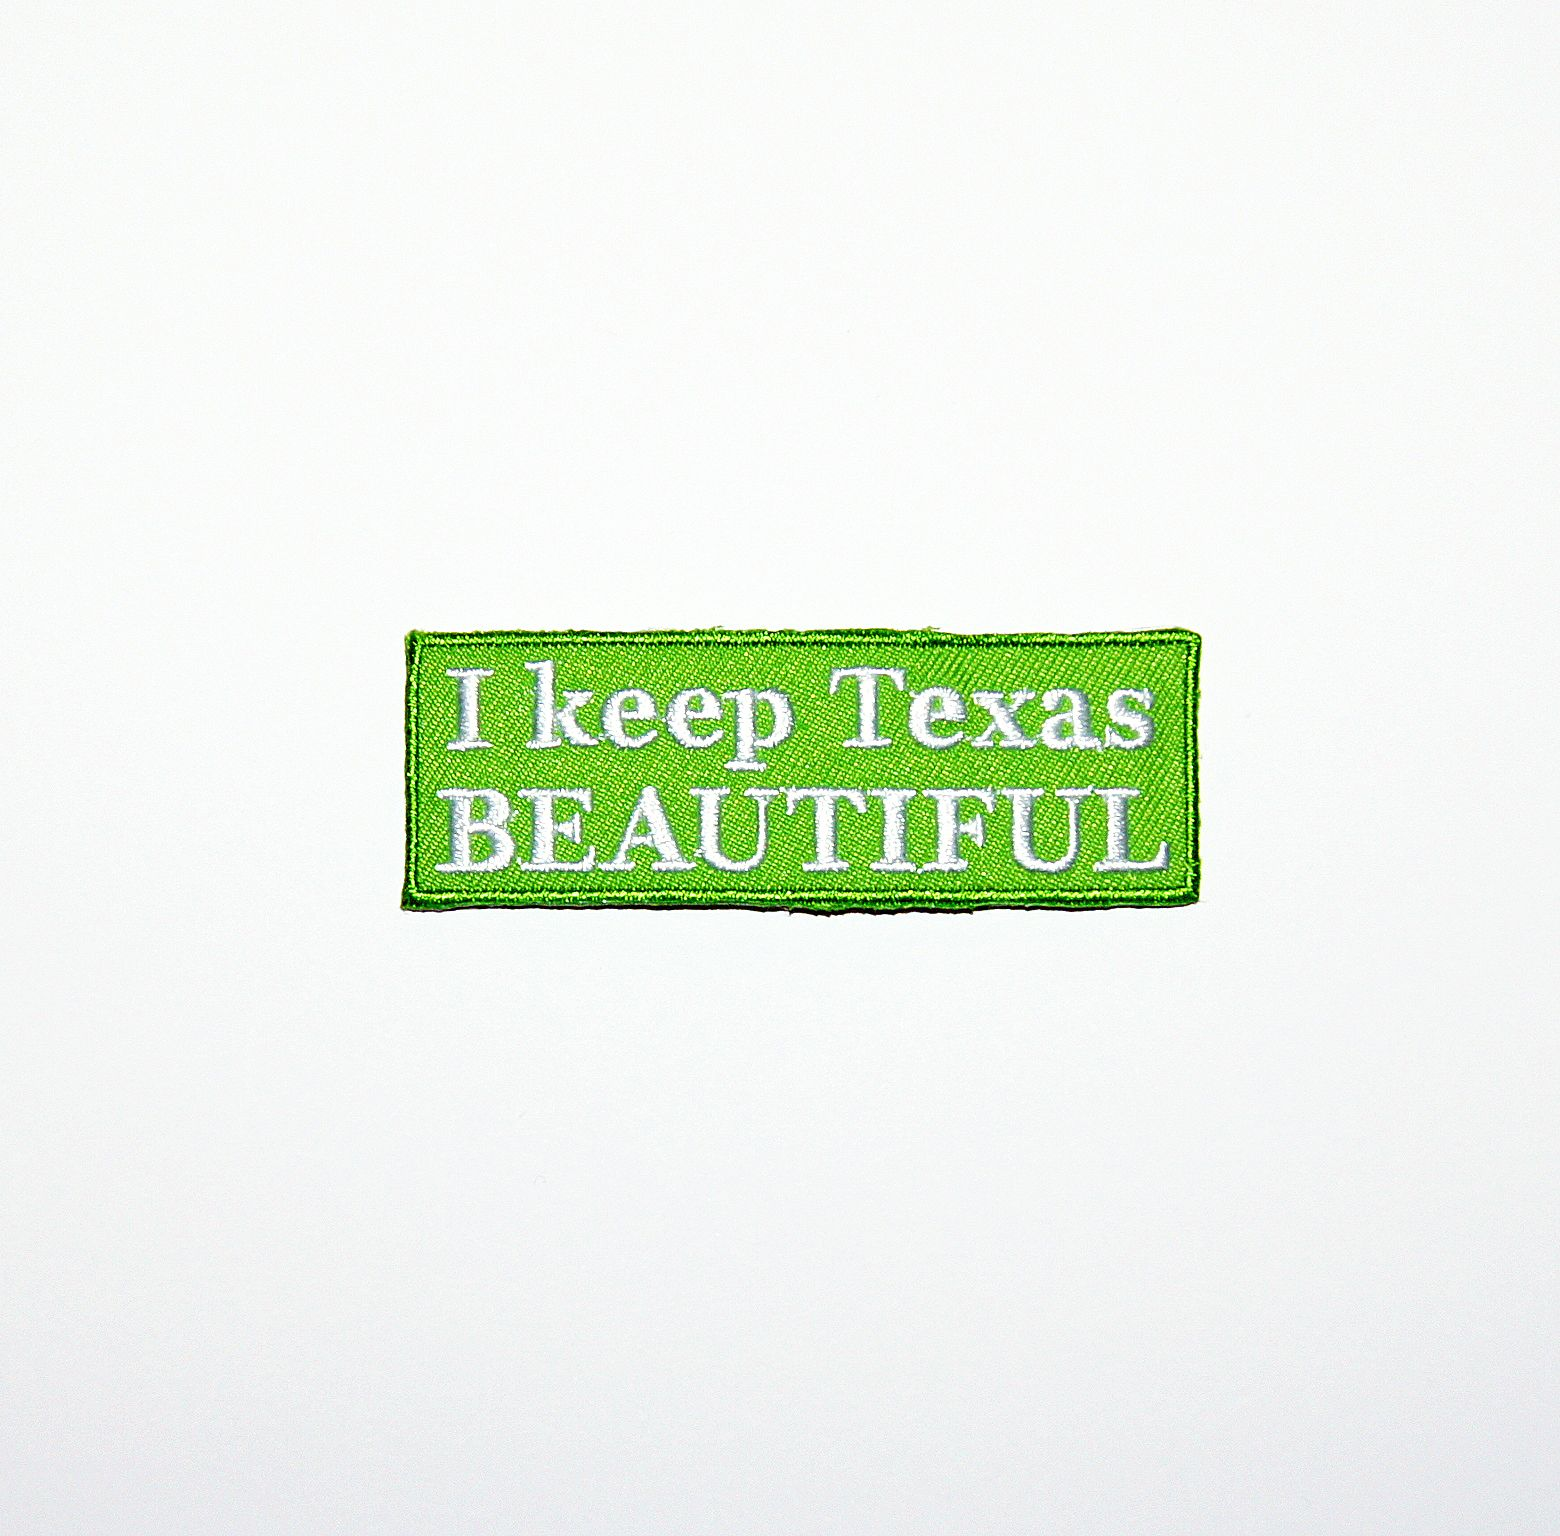 I keep Texas BEAUTIFUL